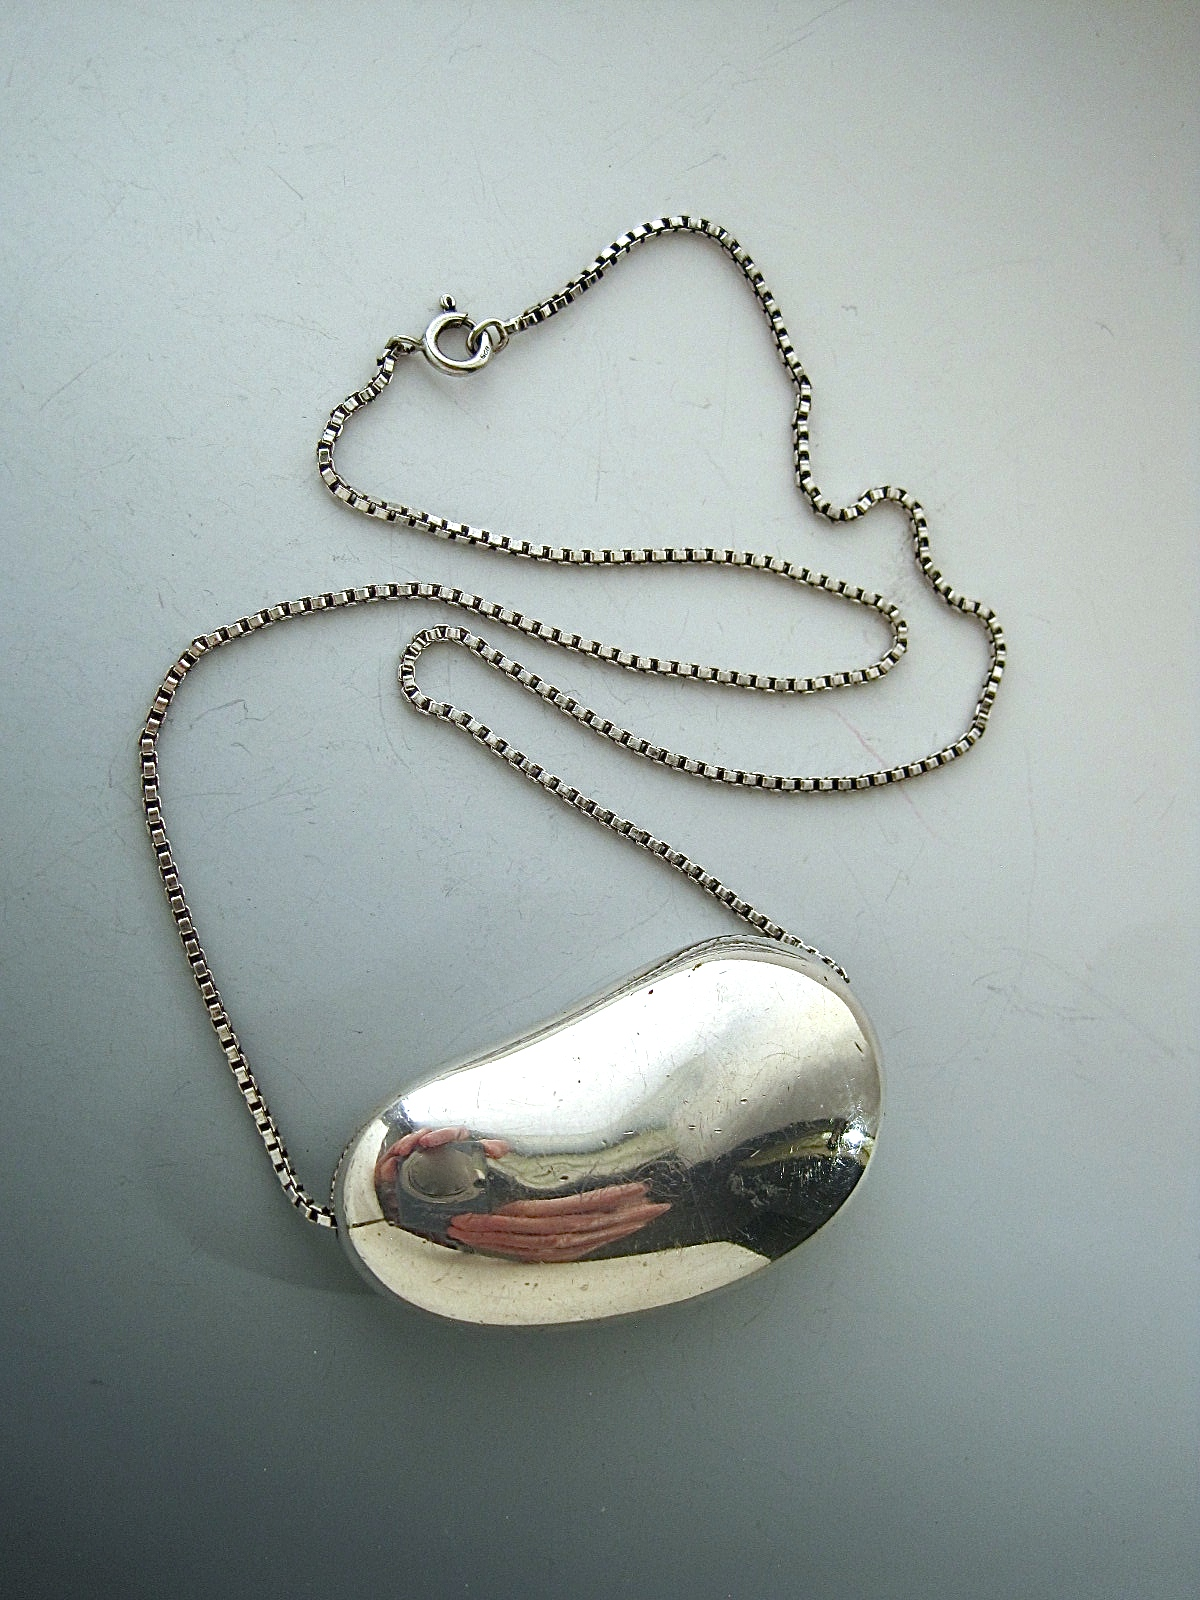 Vintage Large Silver Kidney Bean Necklace 171 Kidney Jewelry